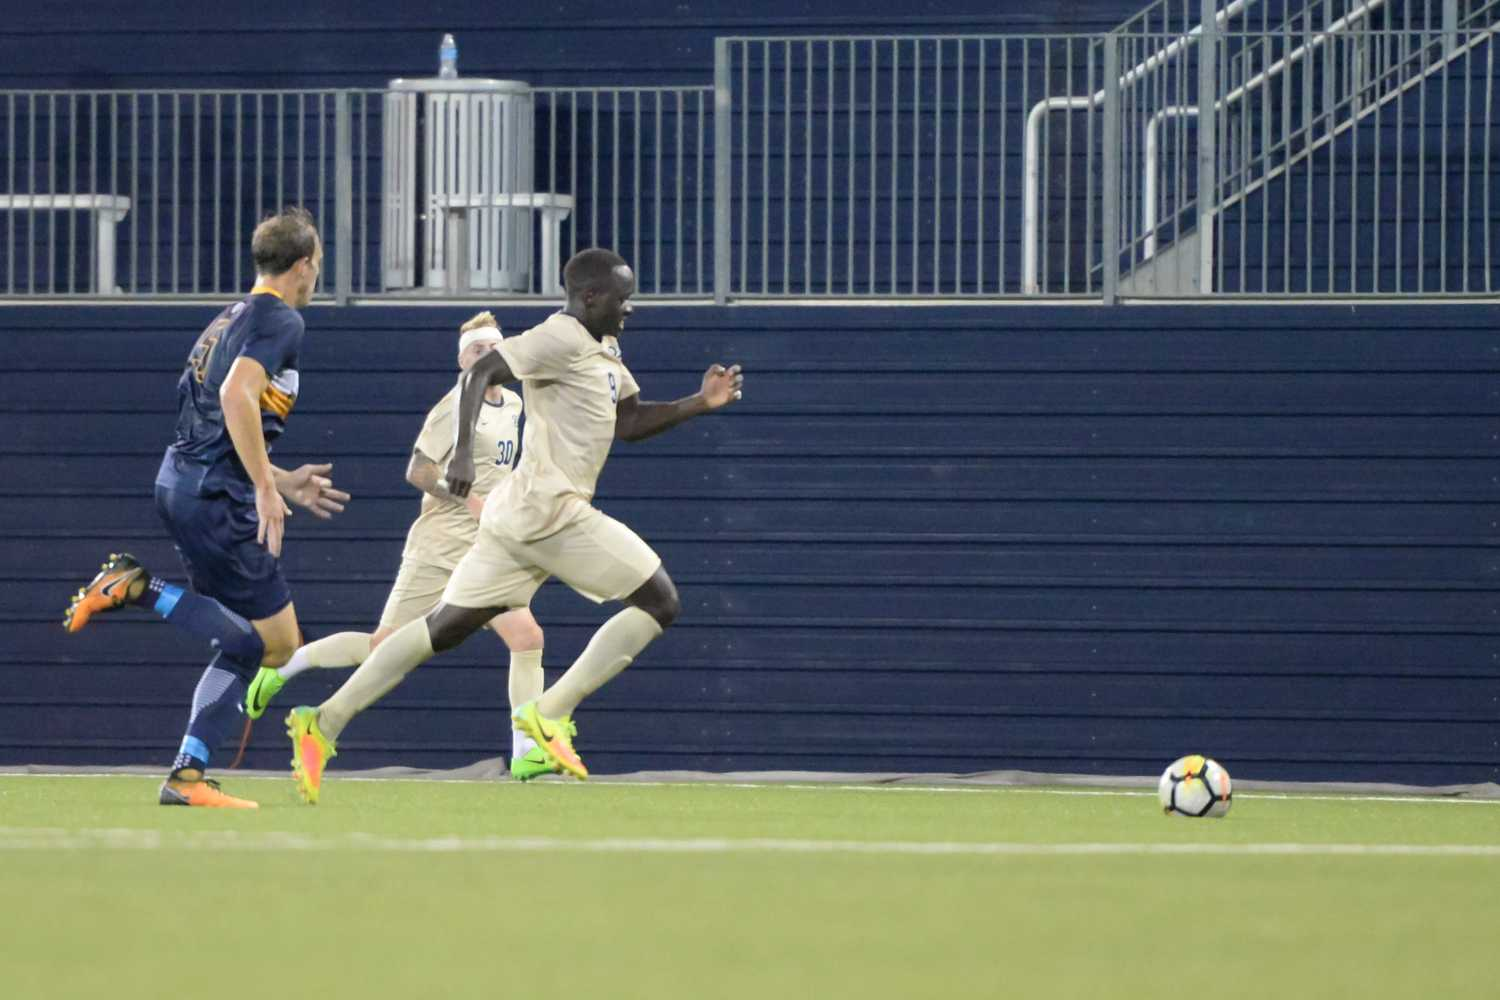 Pitt freshman forward Edward Kizza scored 2 goals for Pitt against West Virginia. (Photo by Evan Meng / Staff Photographer)